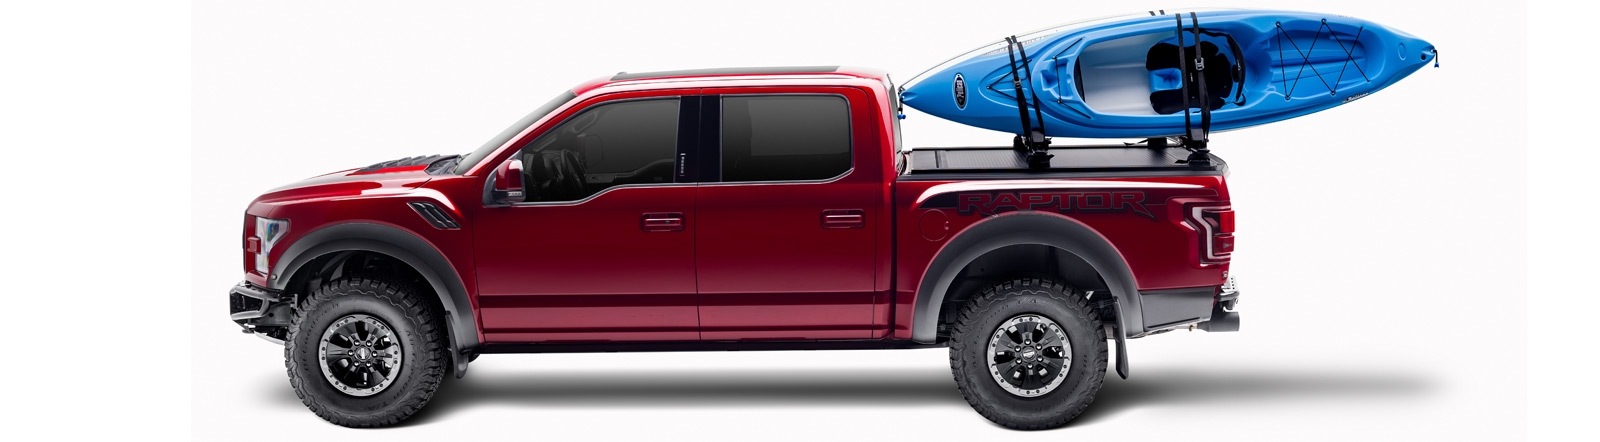 Retrax One XR Retractable Tonneau Bed Cover Banner | www.AutoEQ.ca